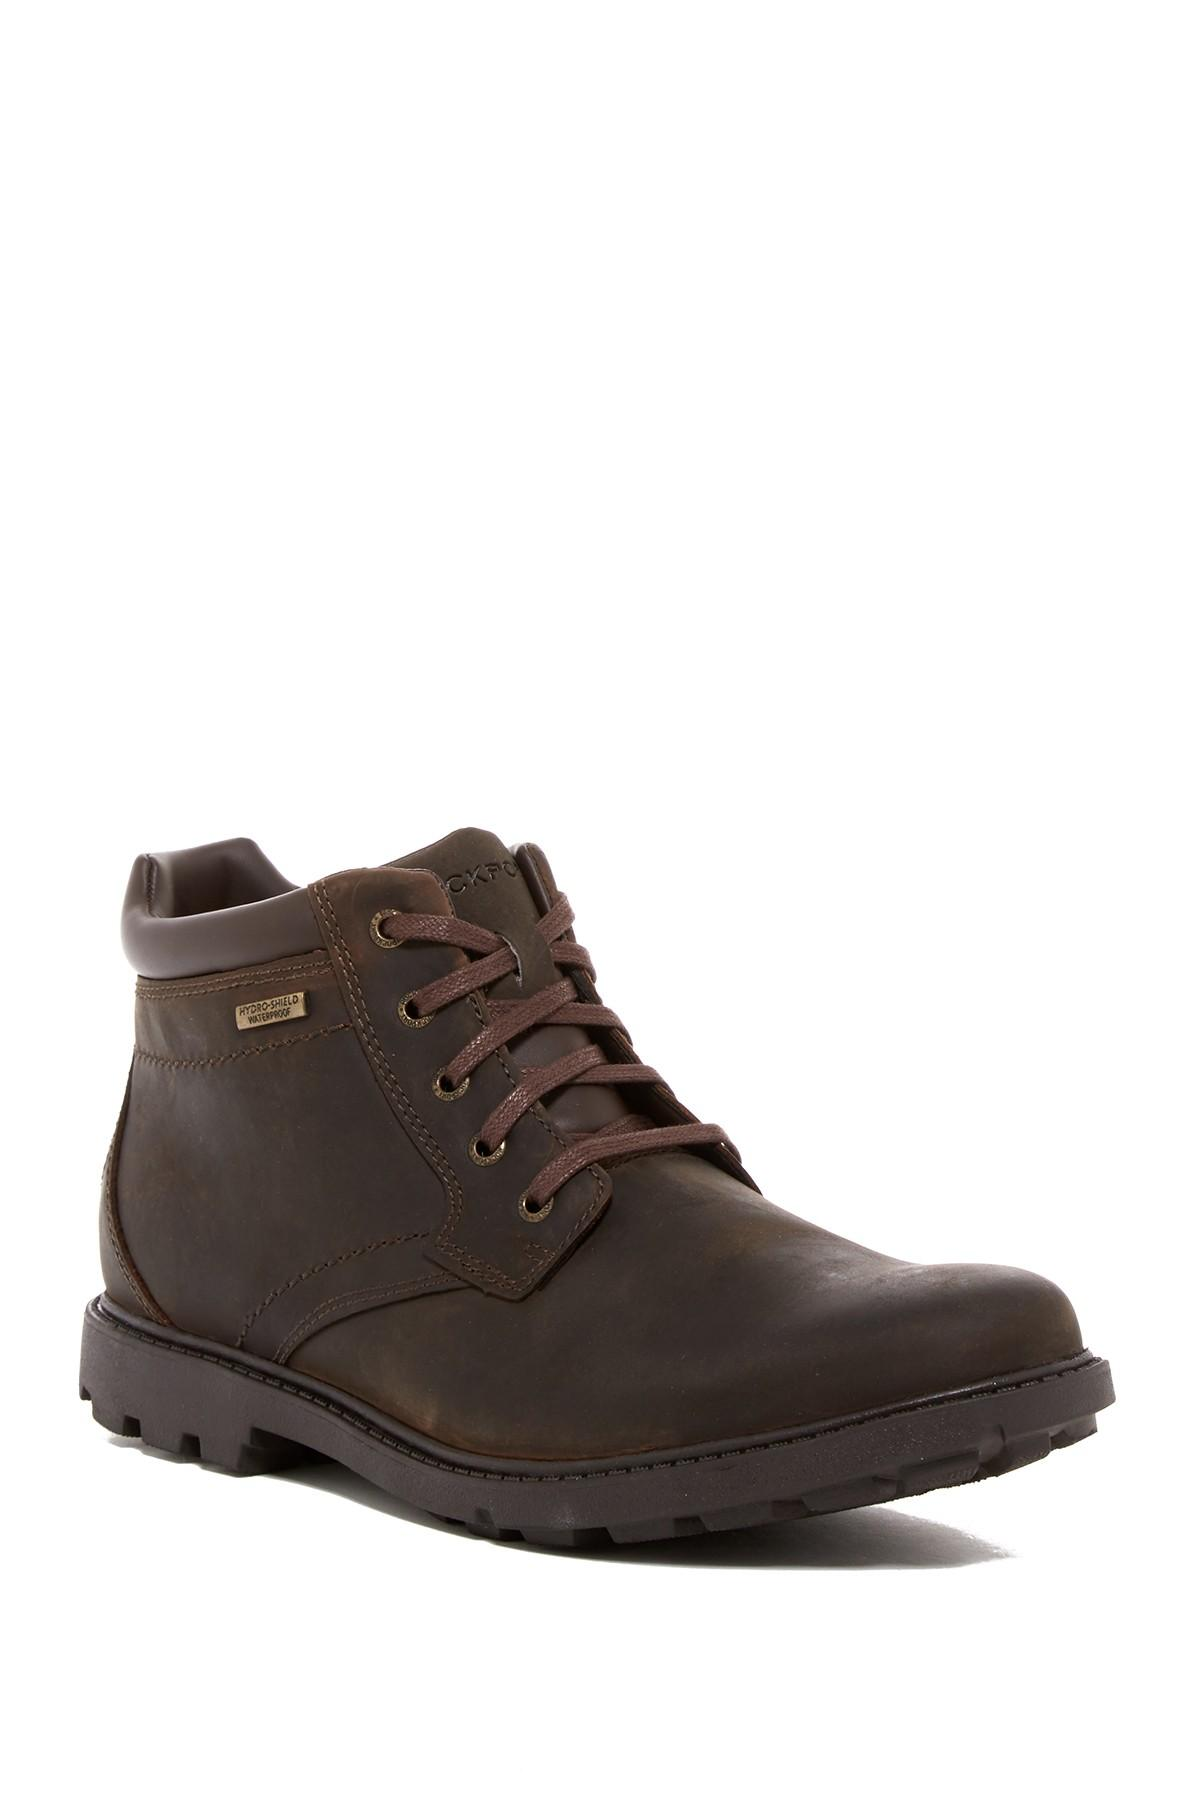 Rockport Storm Surge Waterproof Plain Toe Boot In Brown